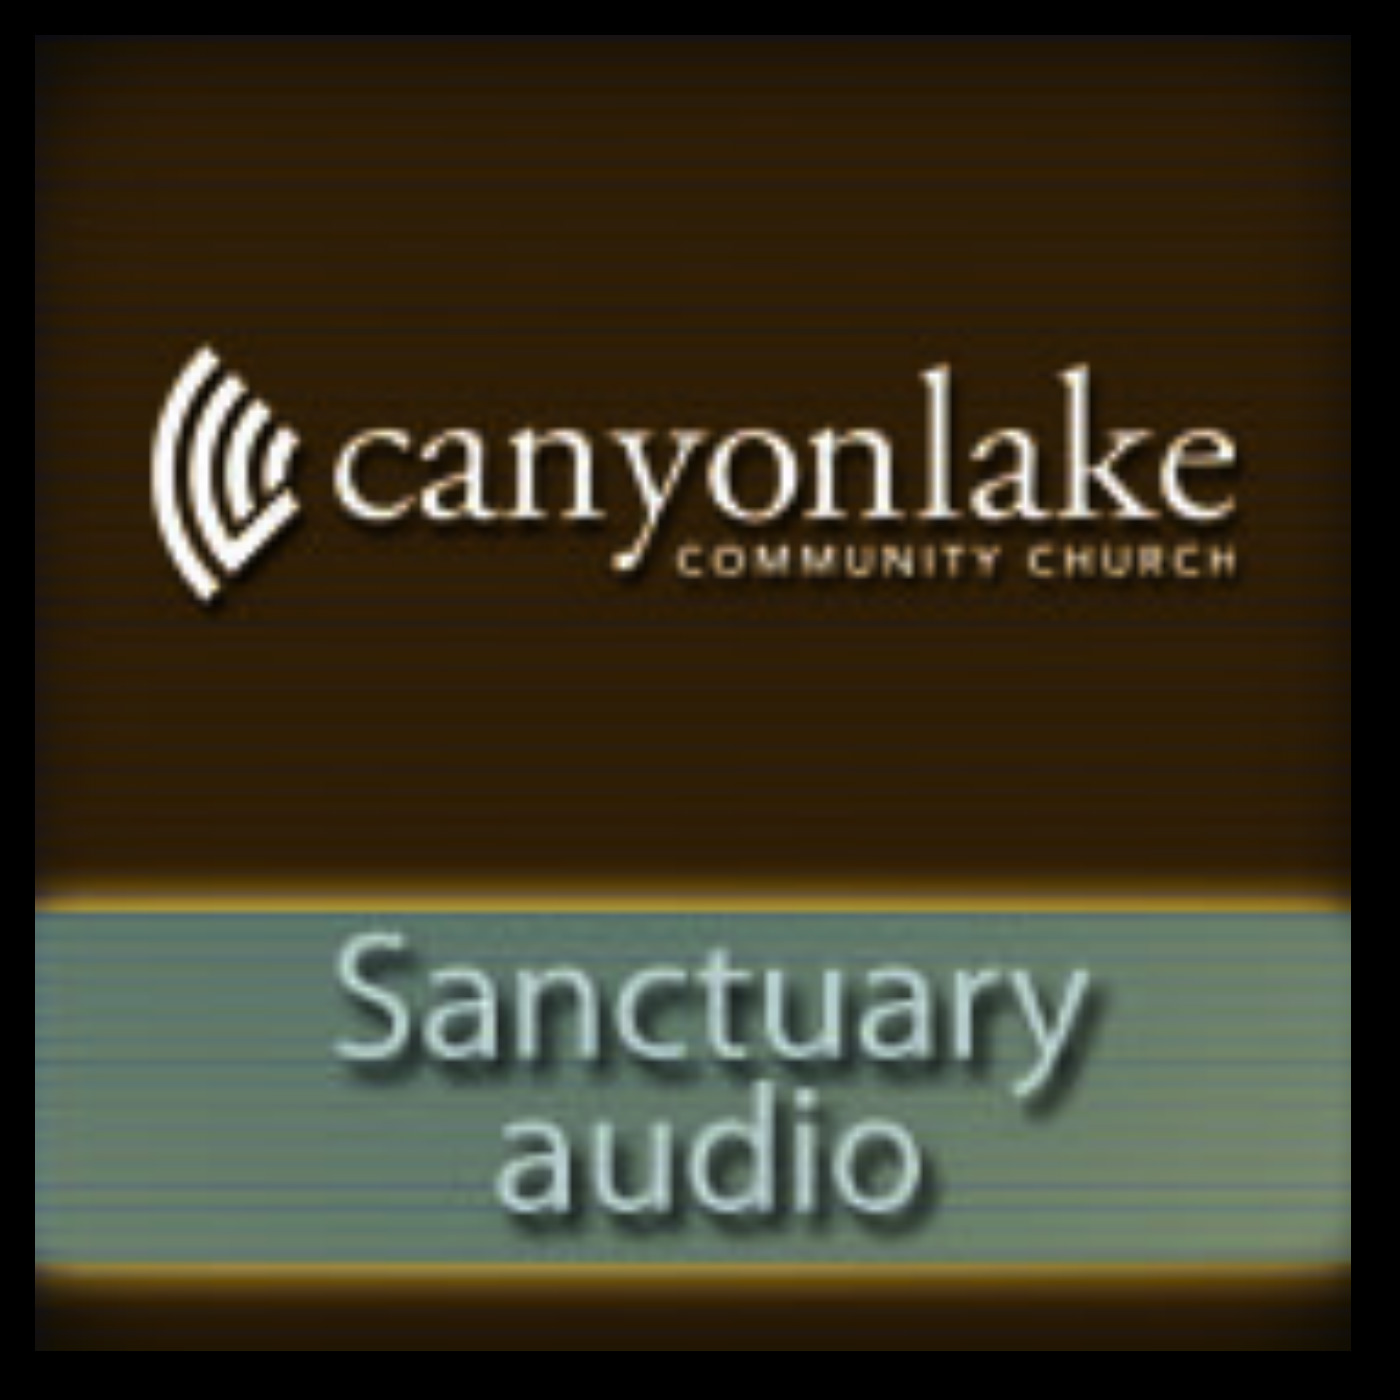 Canyon Lake Community Church